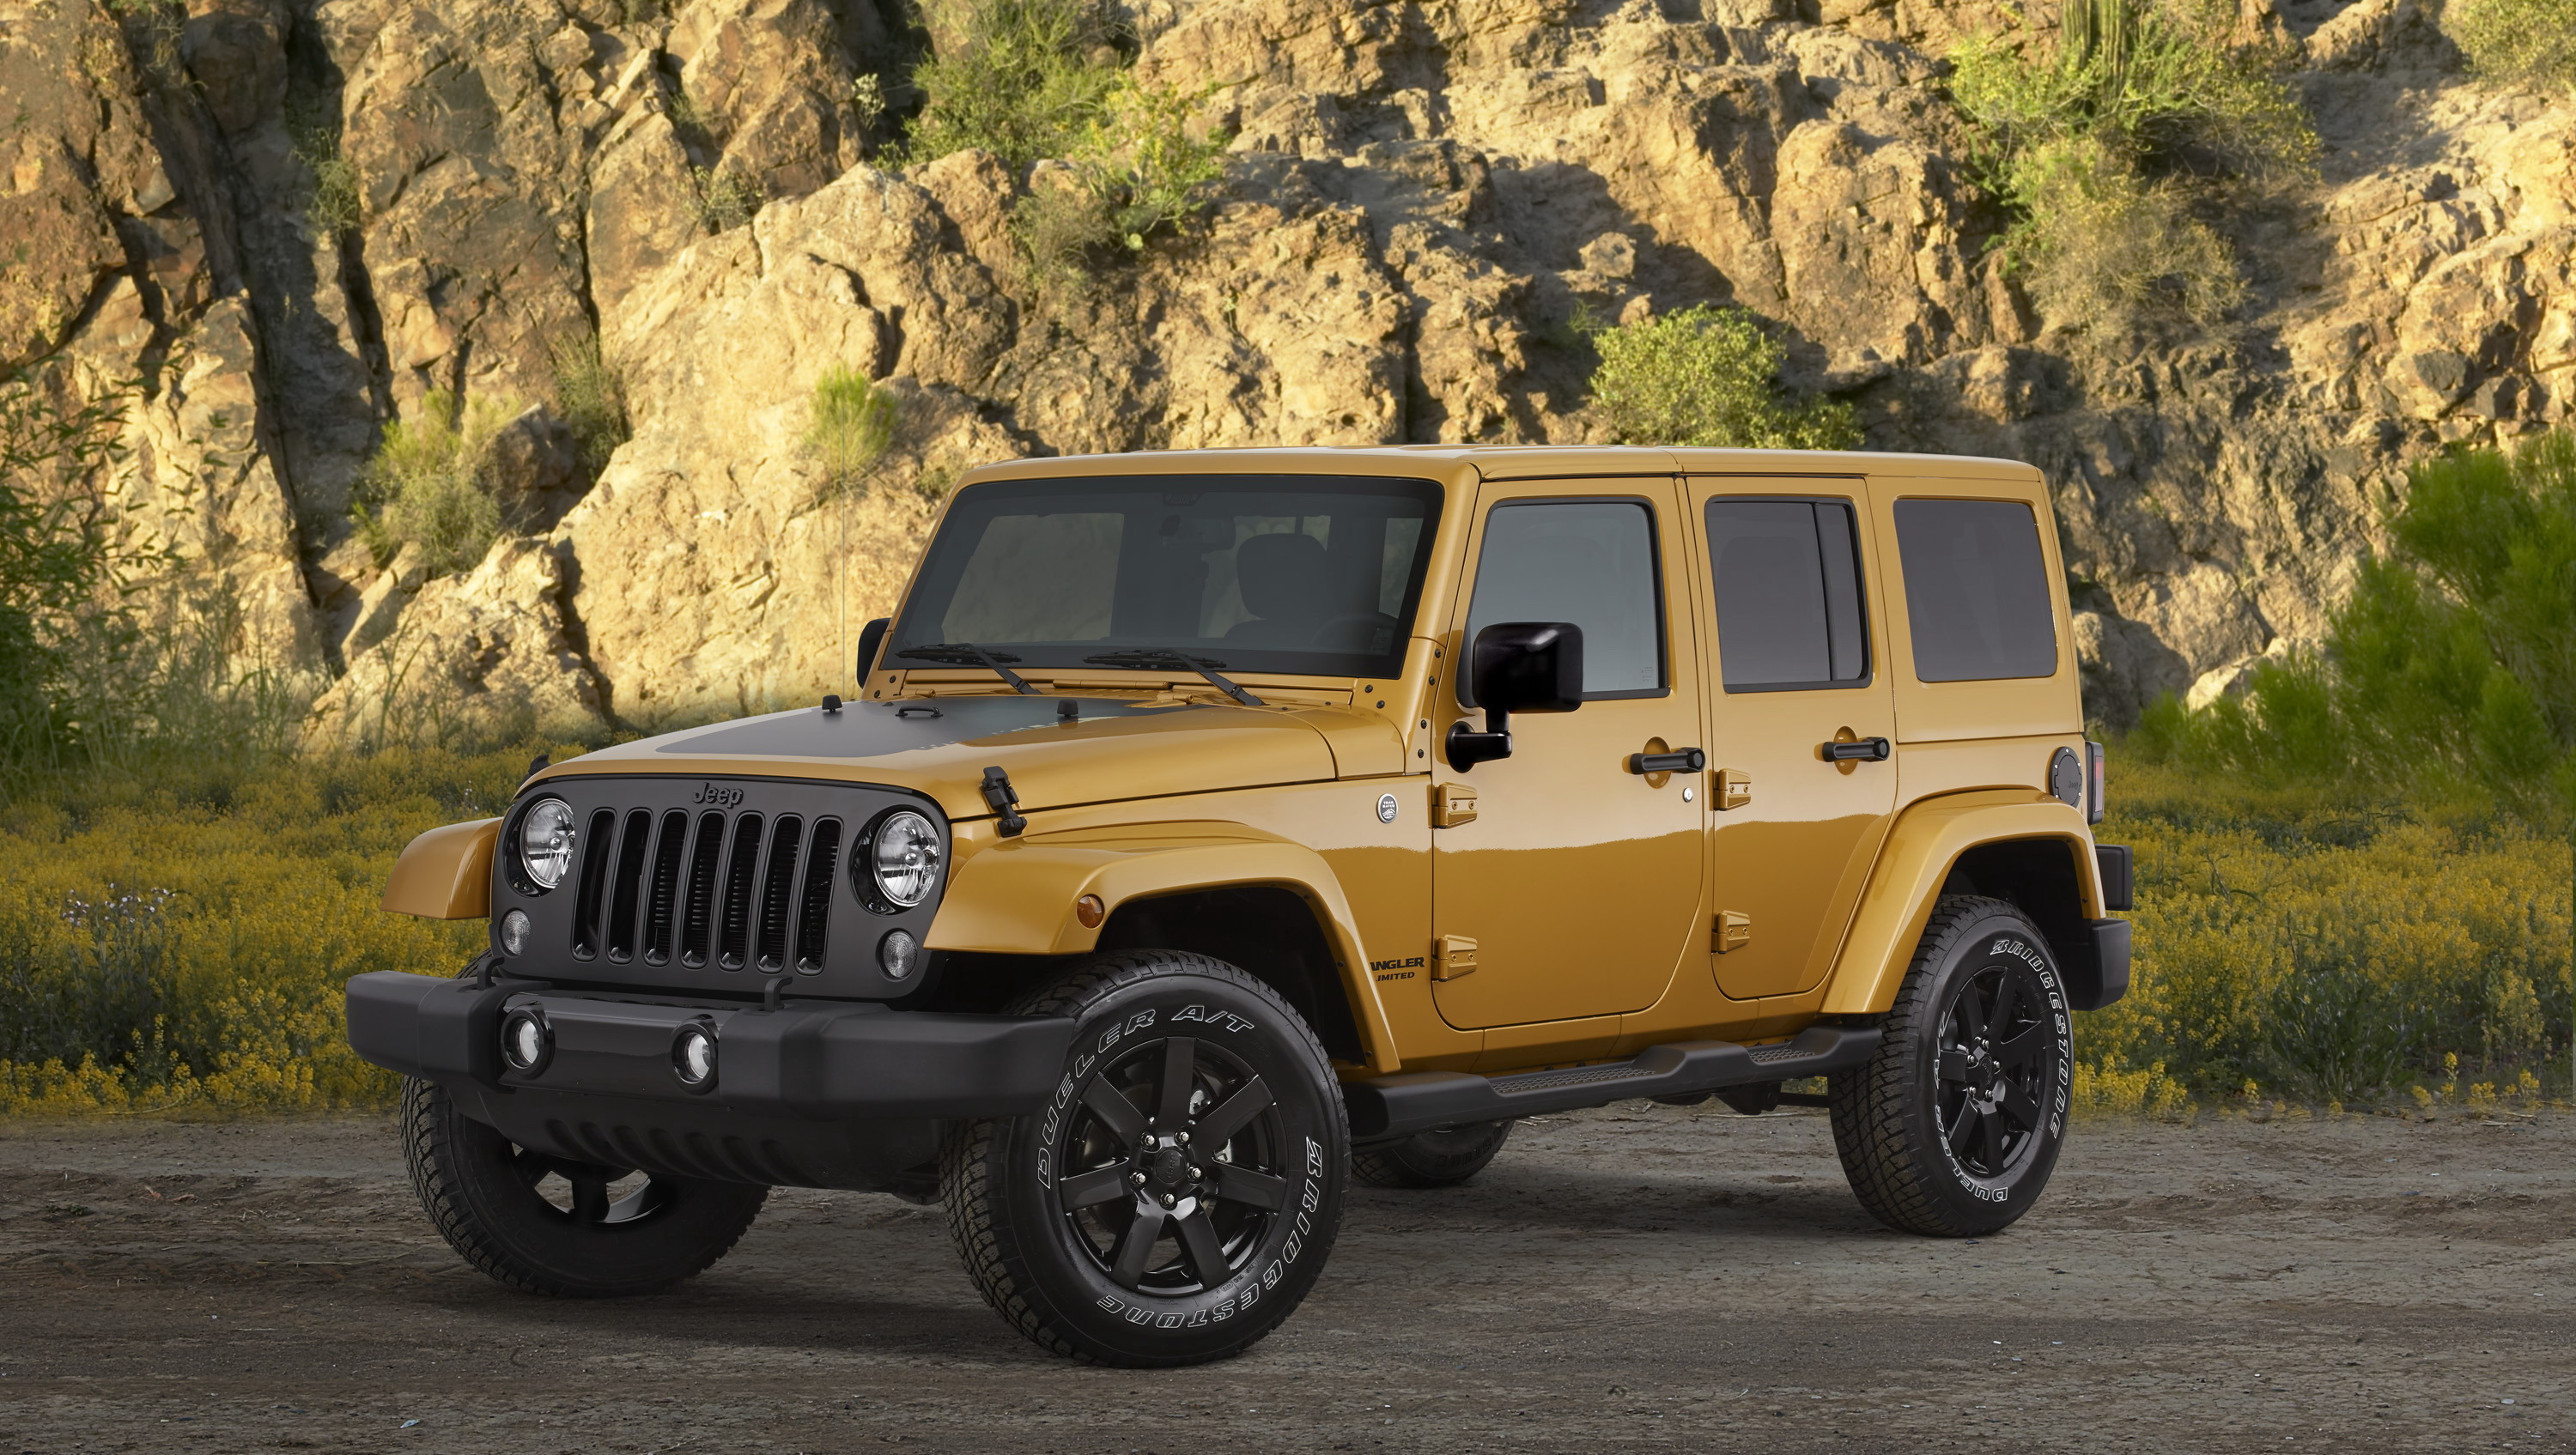 2014 Jeep Wrangler Unlimited Sahara Altitude Edition